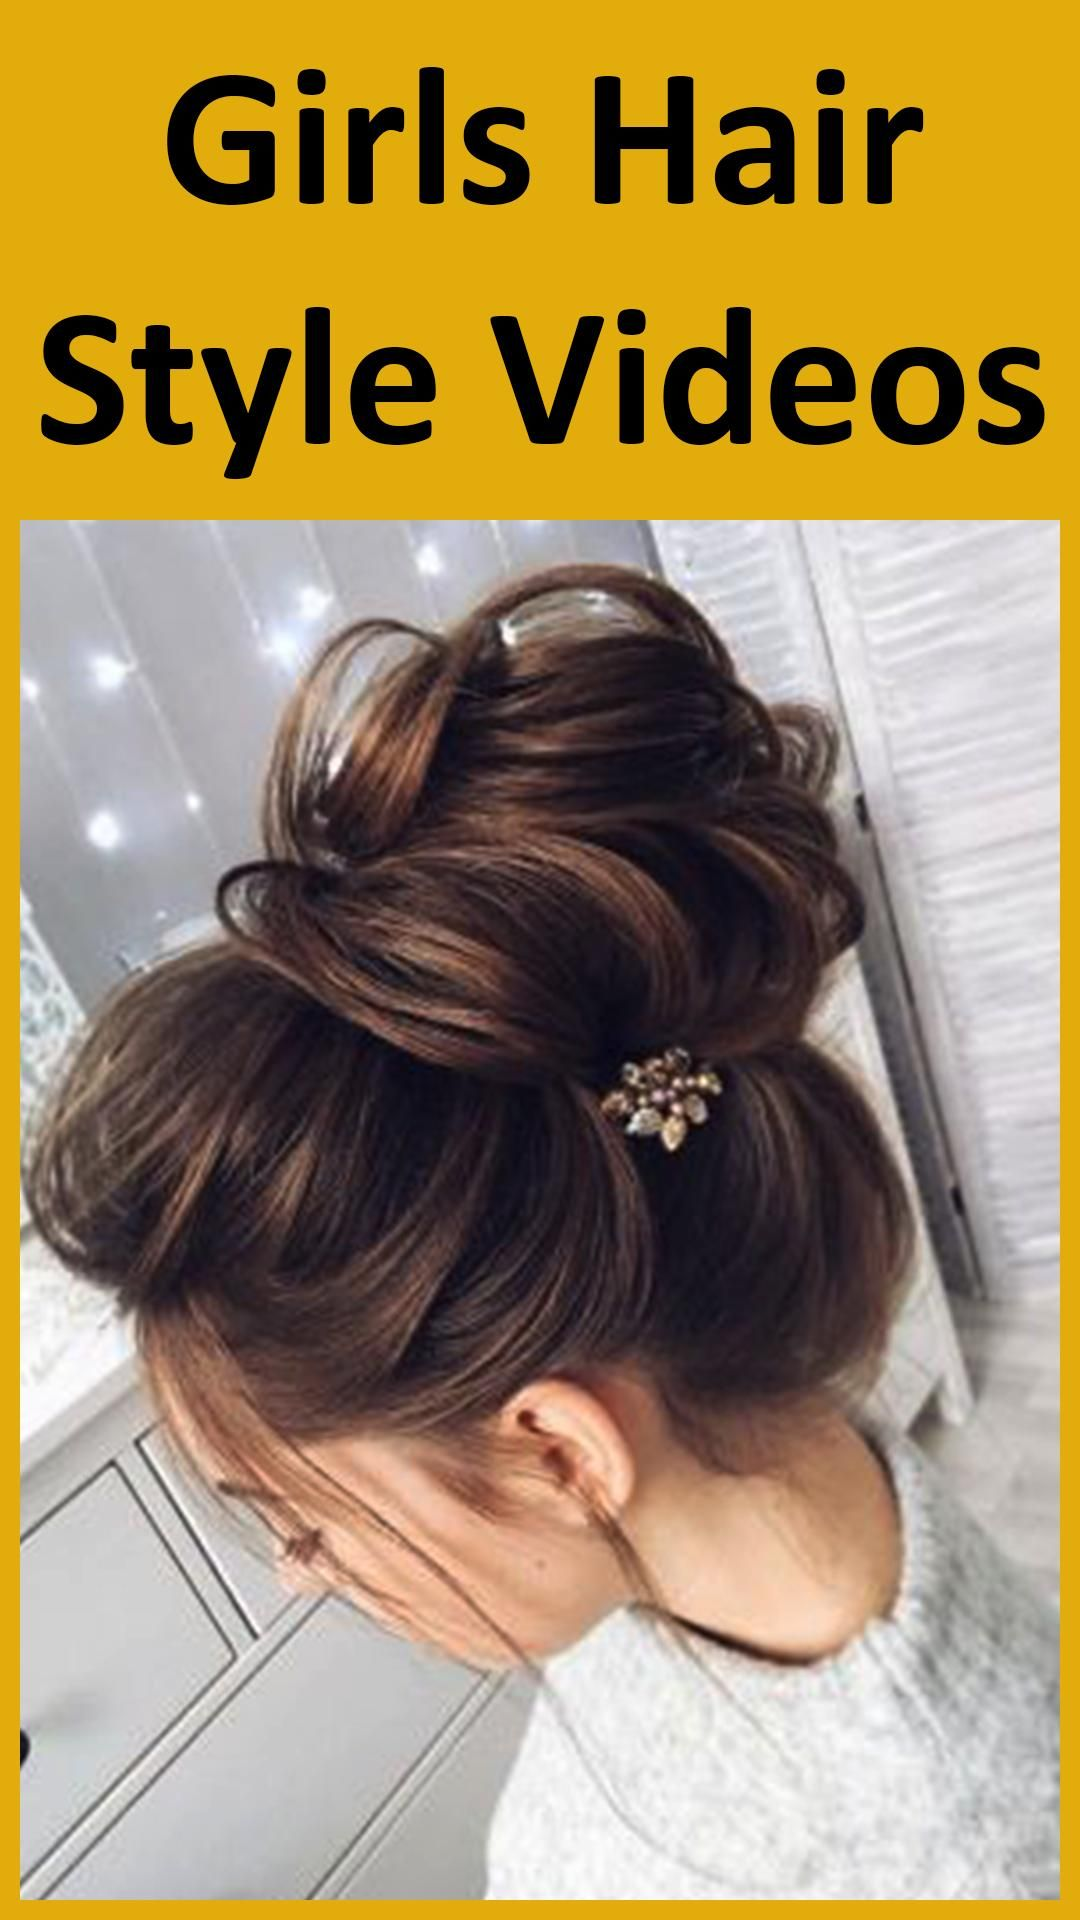 Girls Hairstyle Videos For Android APK Download- fancy hairstyles videos hairstyles videos for ...